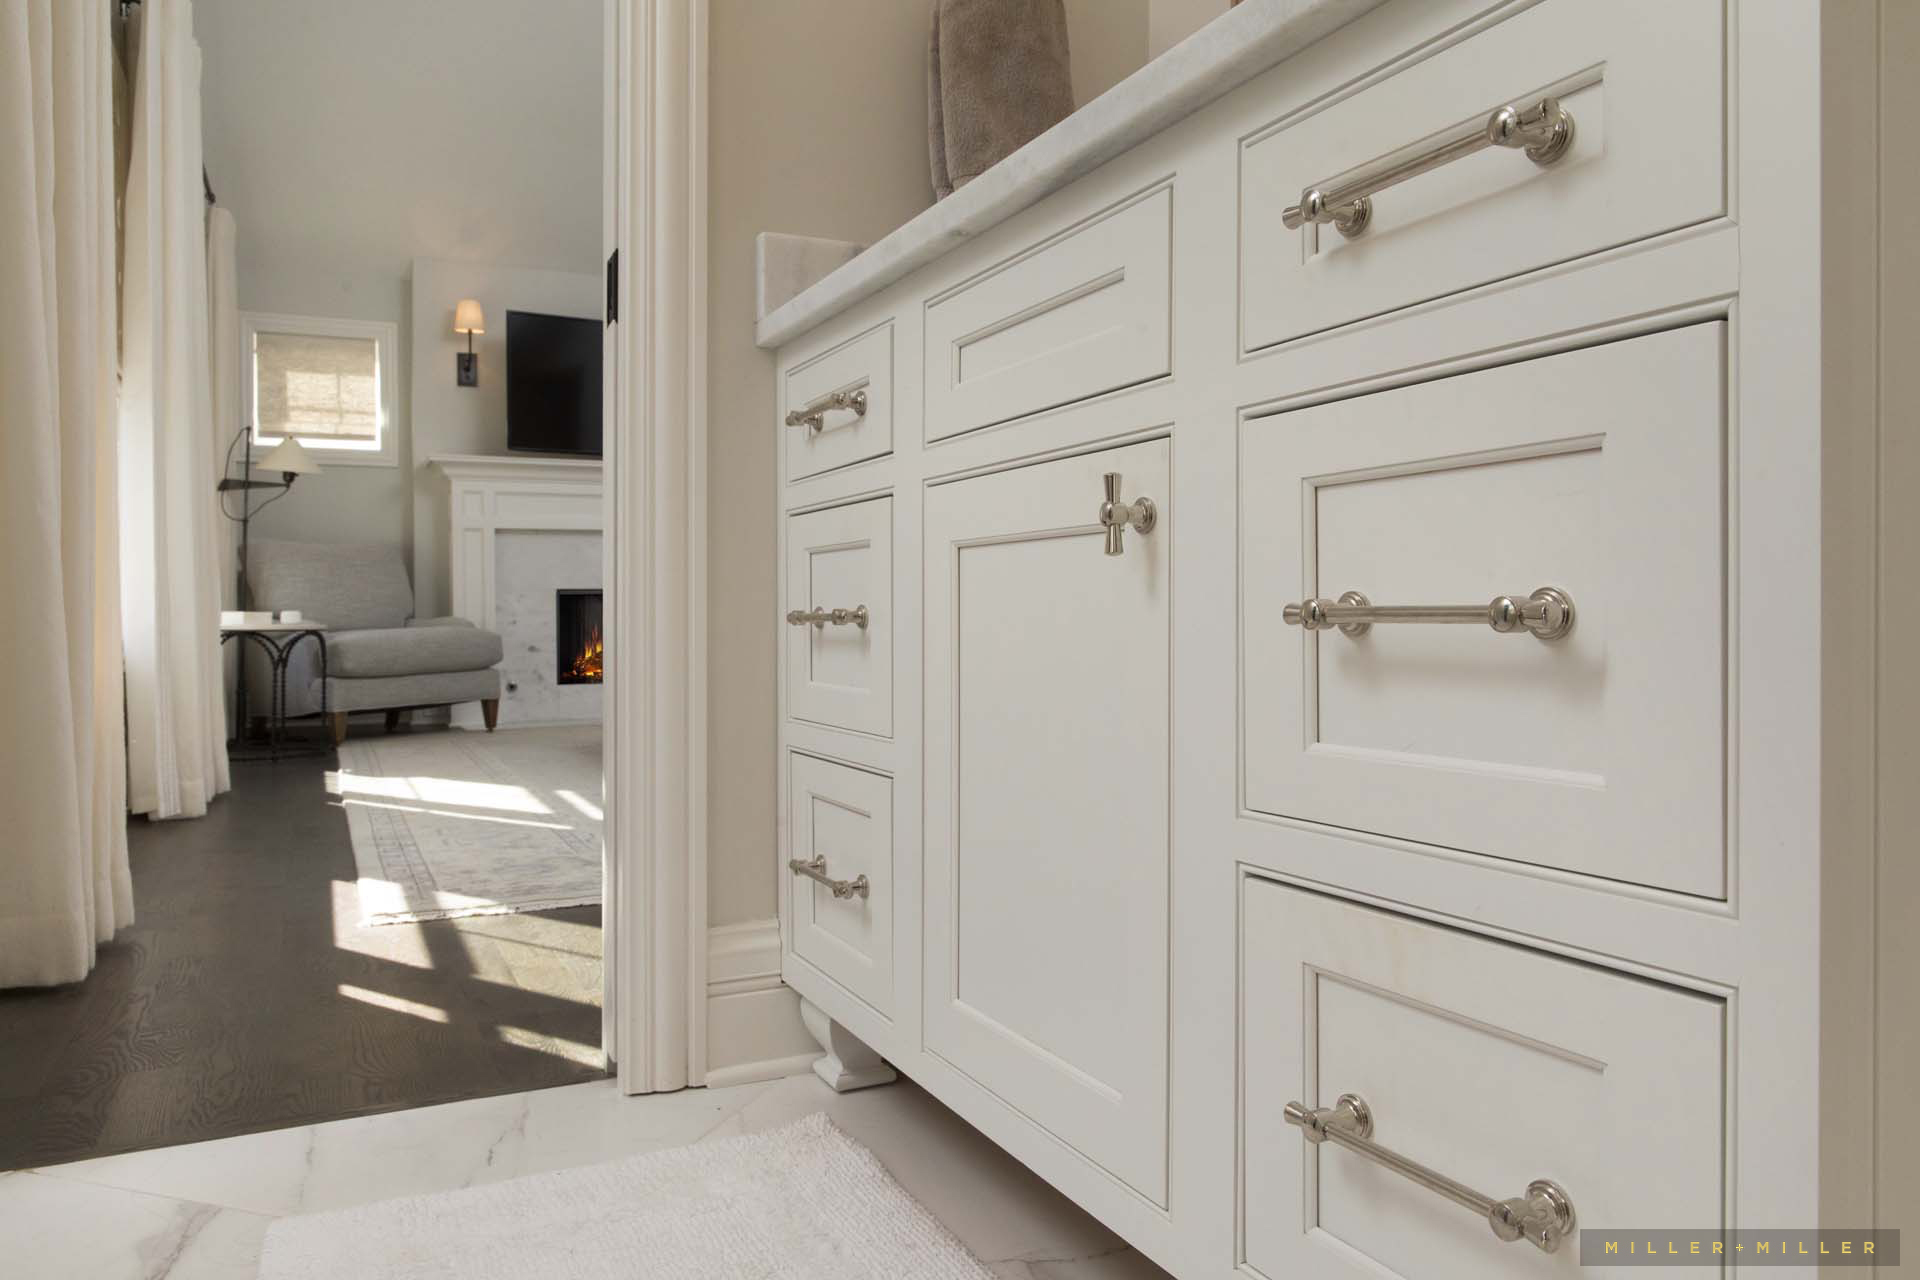 classic-white-bathroom-cabinetry-photos